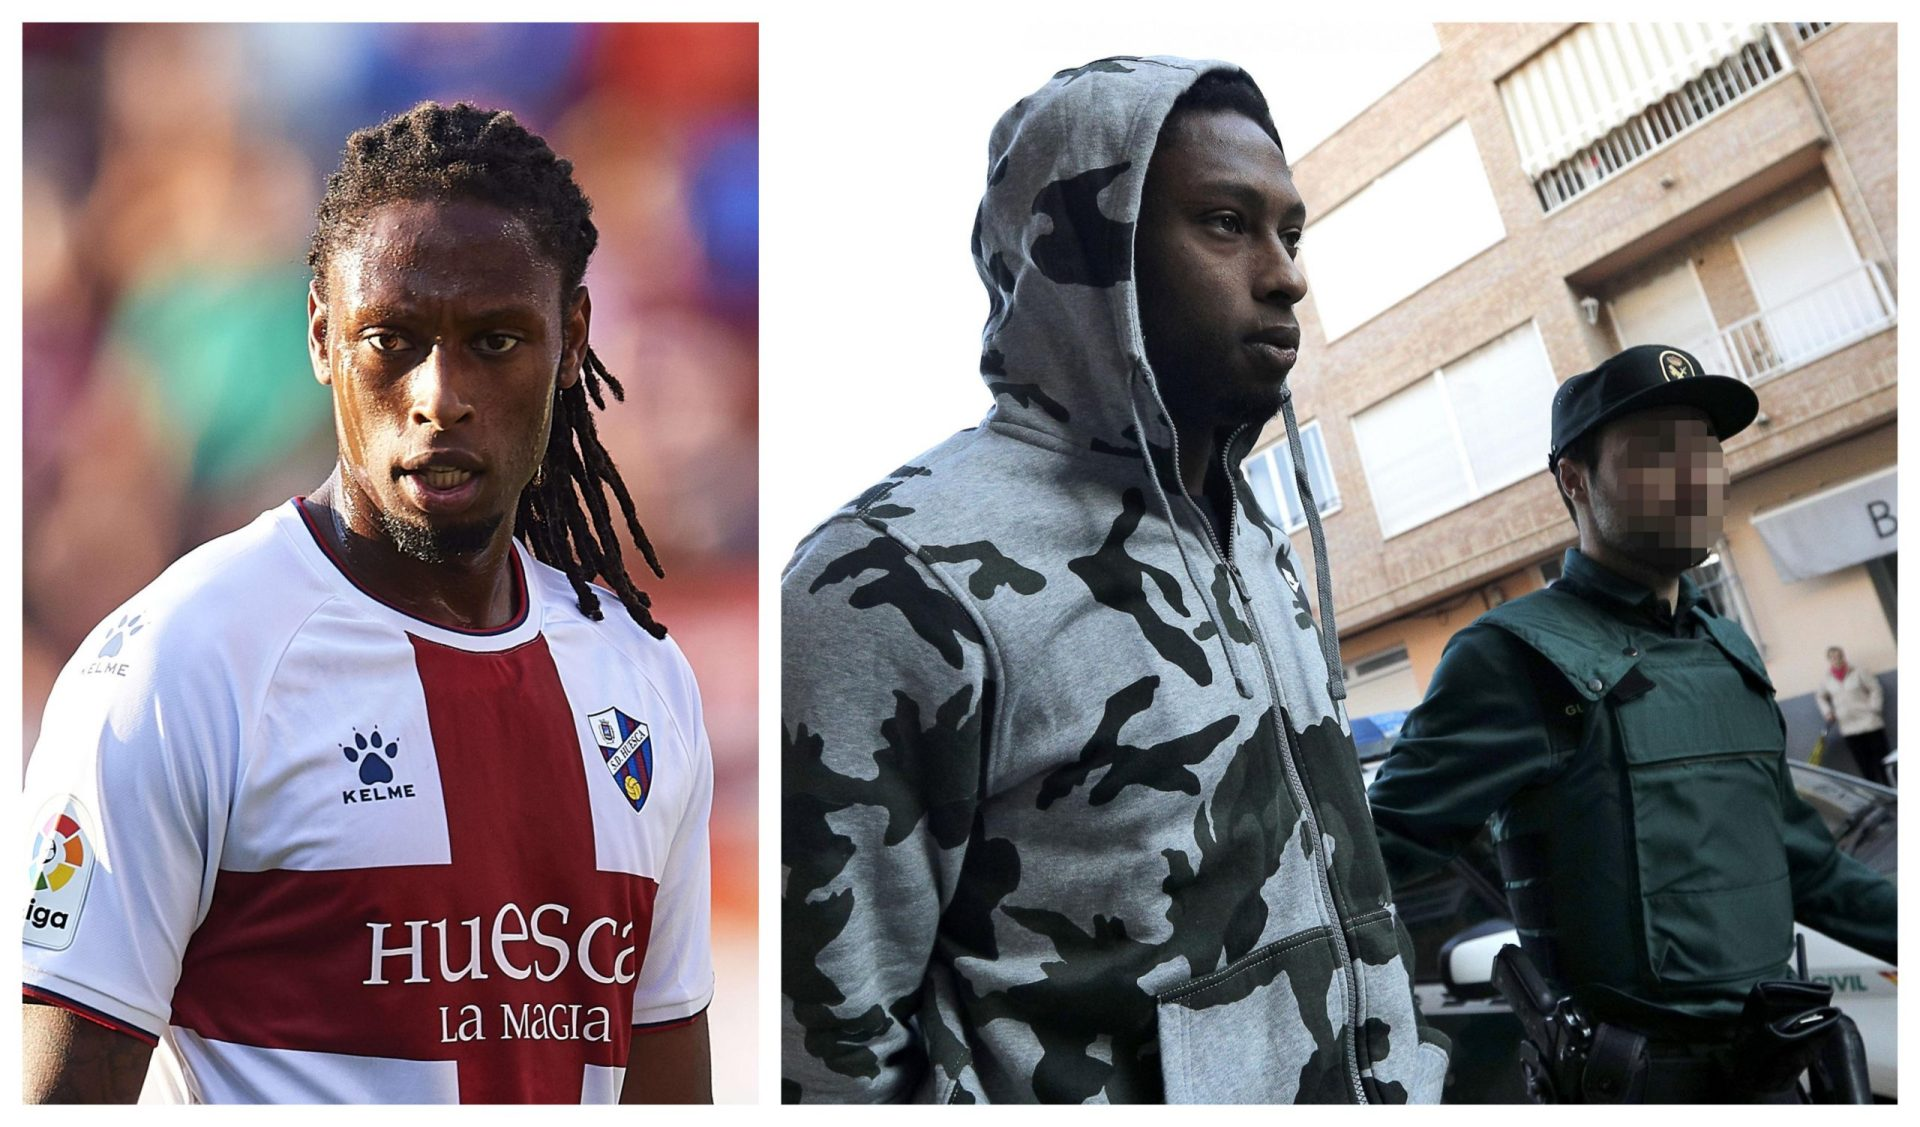 Defender's Attack: Olympiakos' Ruben Semedo found guilty of robbery, assault, and kidnapping - THE SPORTS ROOM